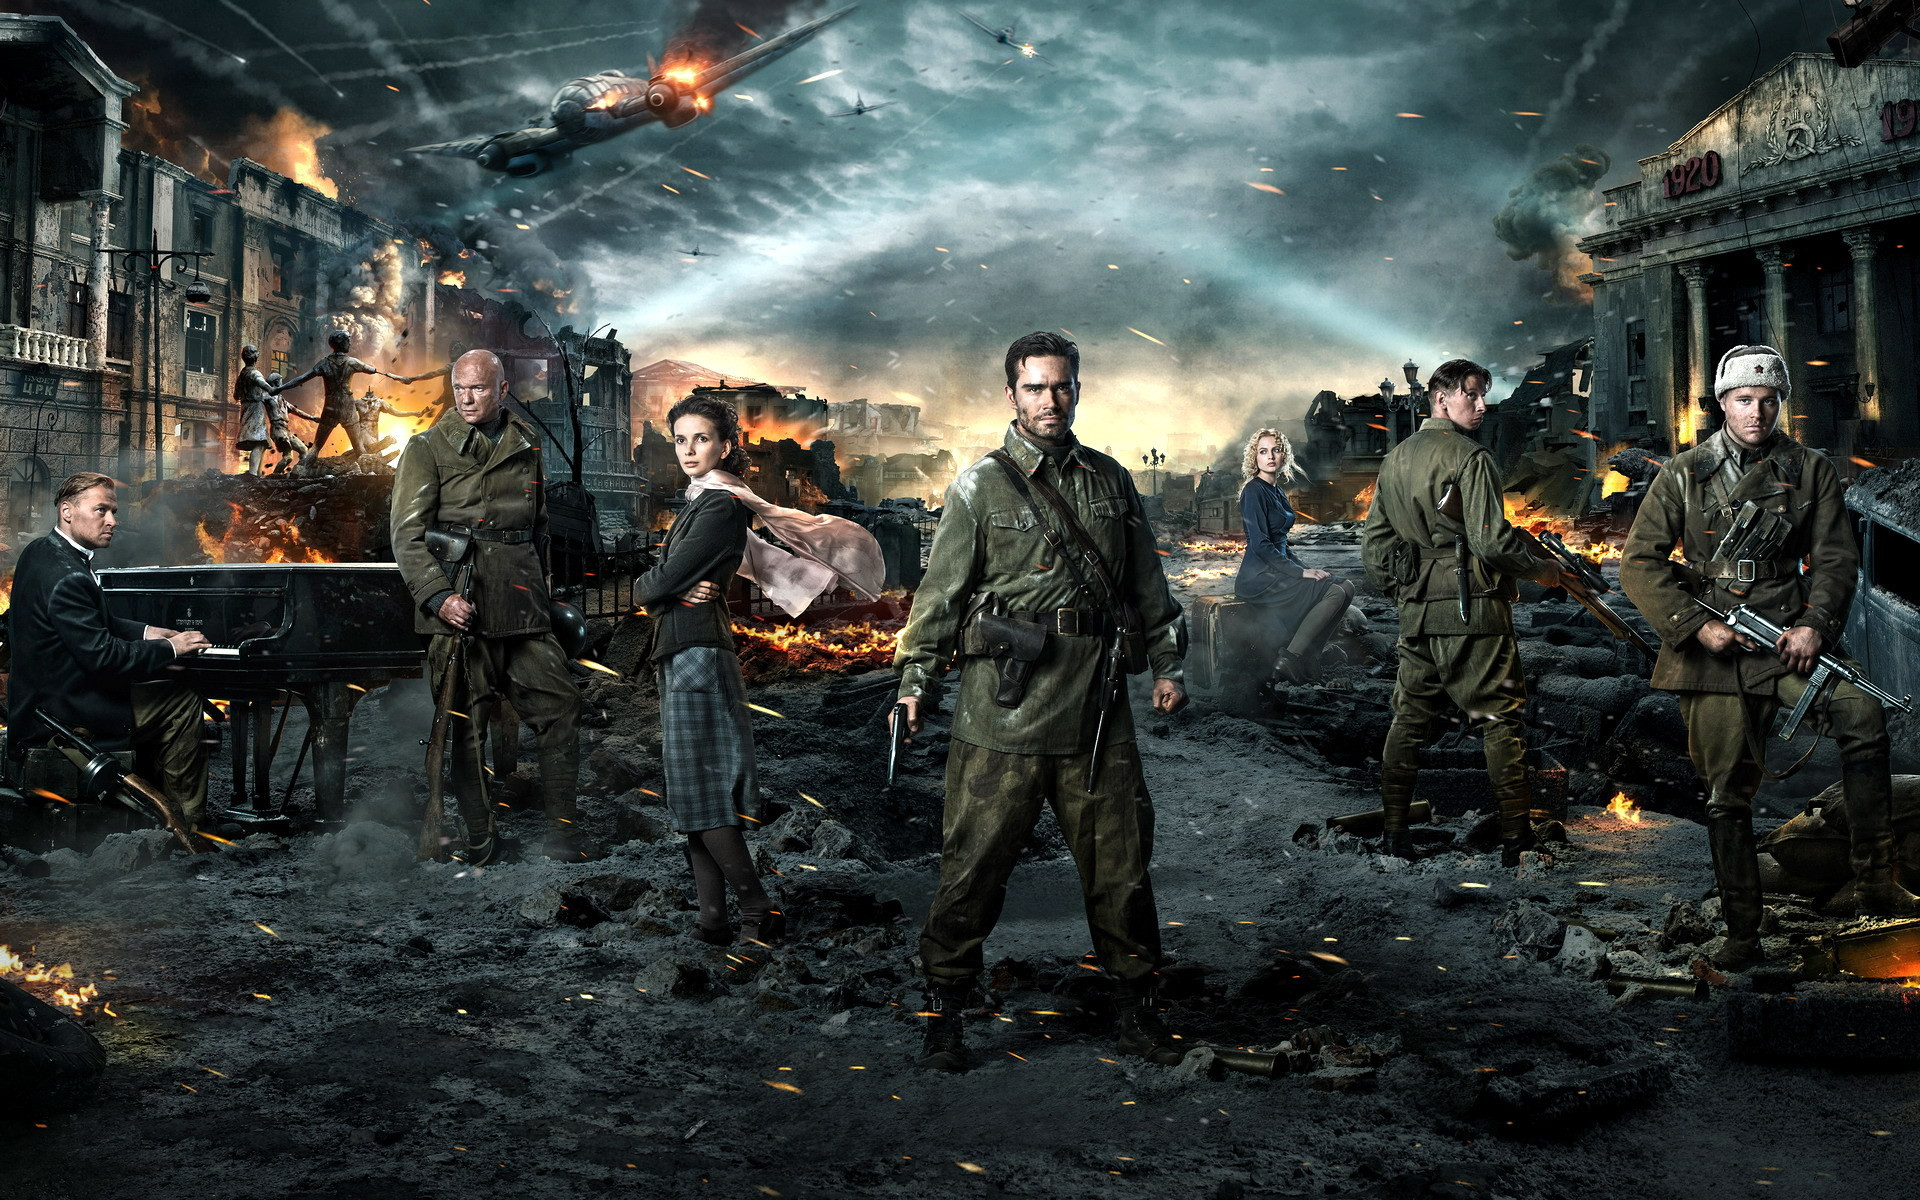 Res: 1920x1200, Stalingrad Movie HD Full Screen Wallpaper